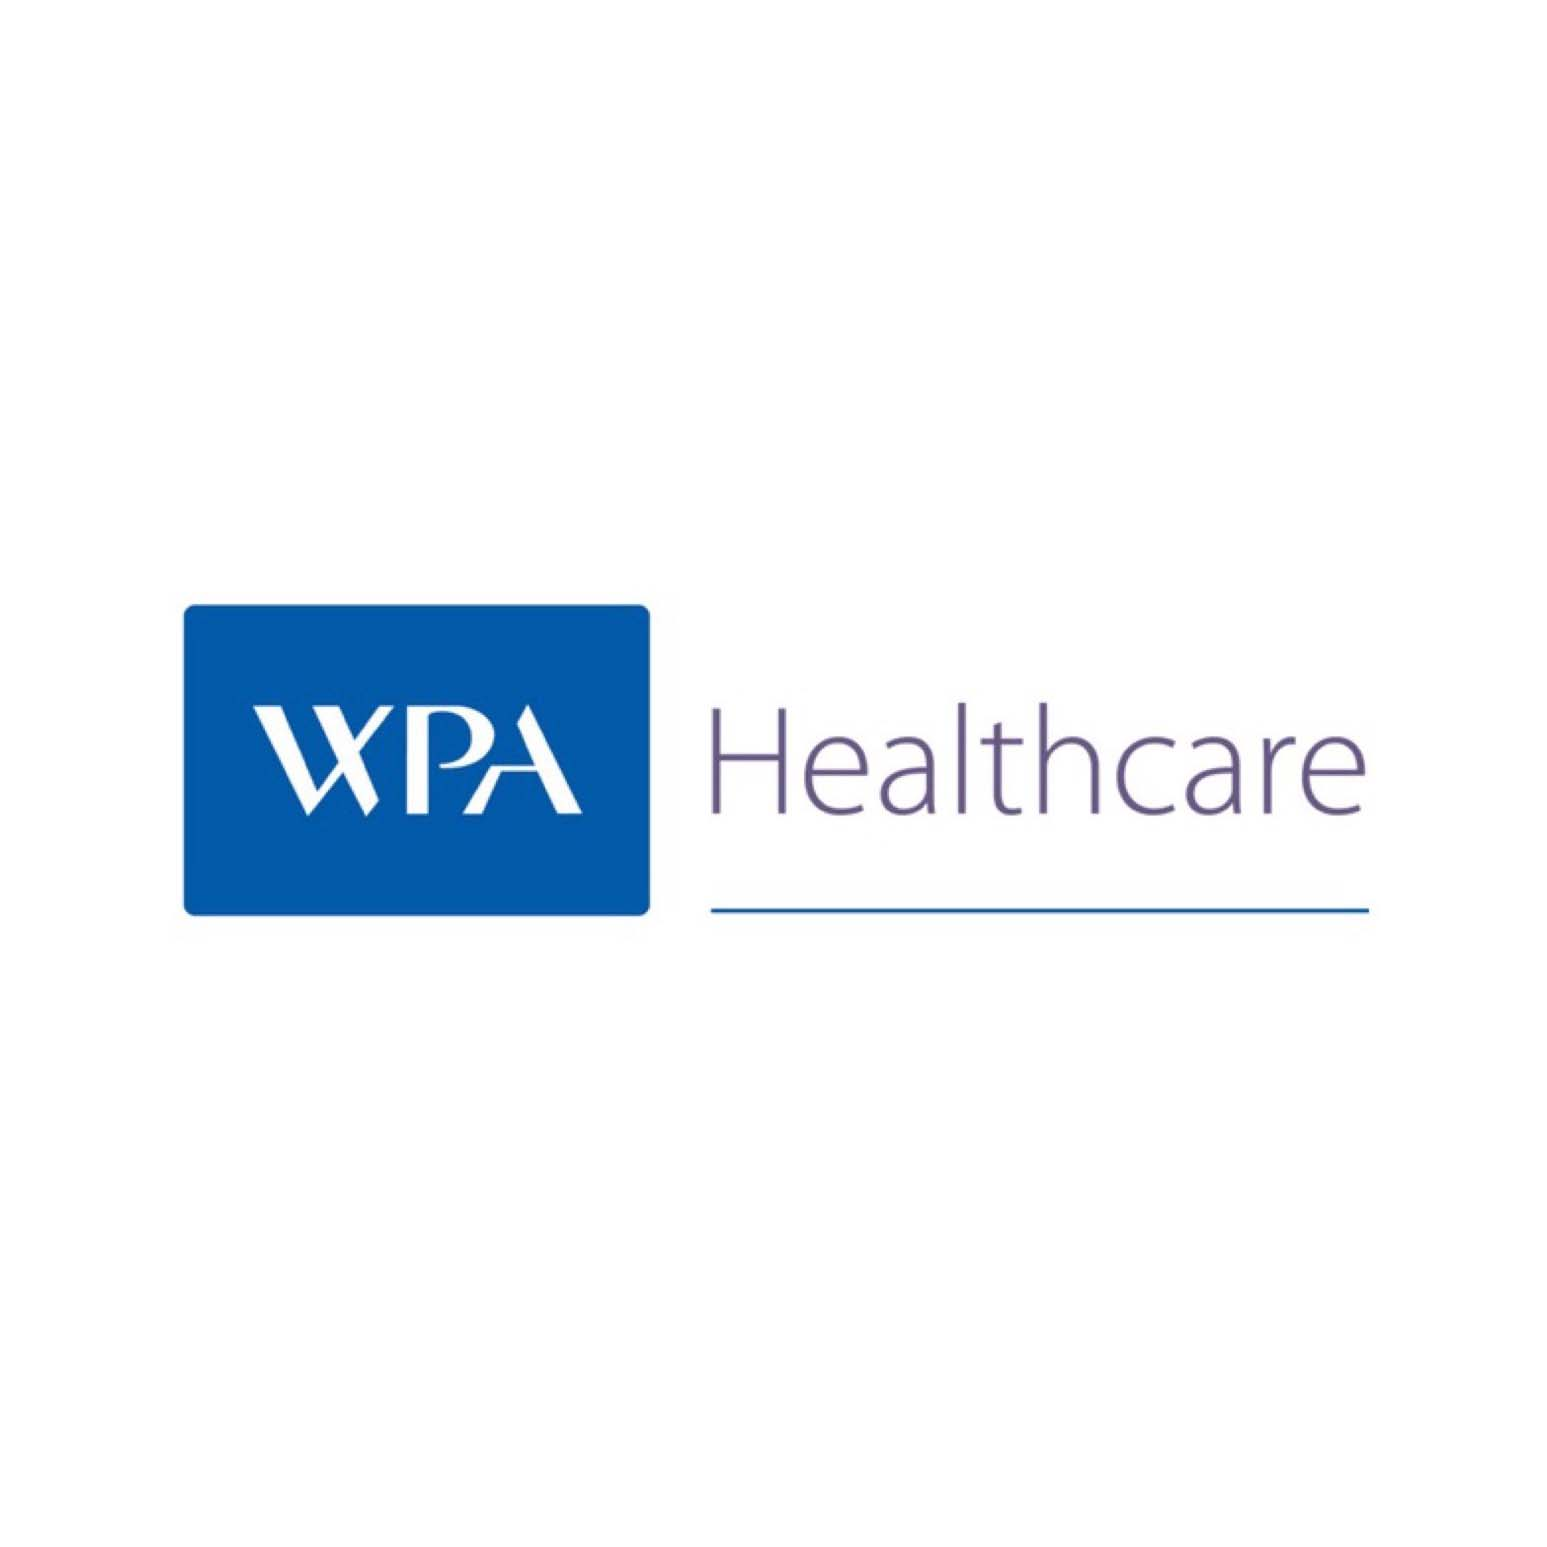 wpa practice Wpa healthcare practice: the franchise opportunity with over 70 franchisees uk-wide, the established health insurance chain is looking to attract people with business acumen and a drive to succeed.